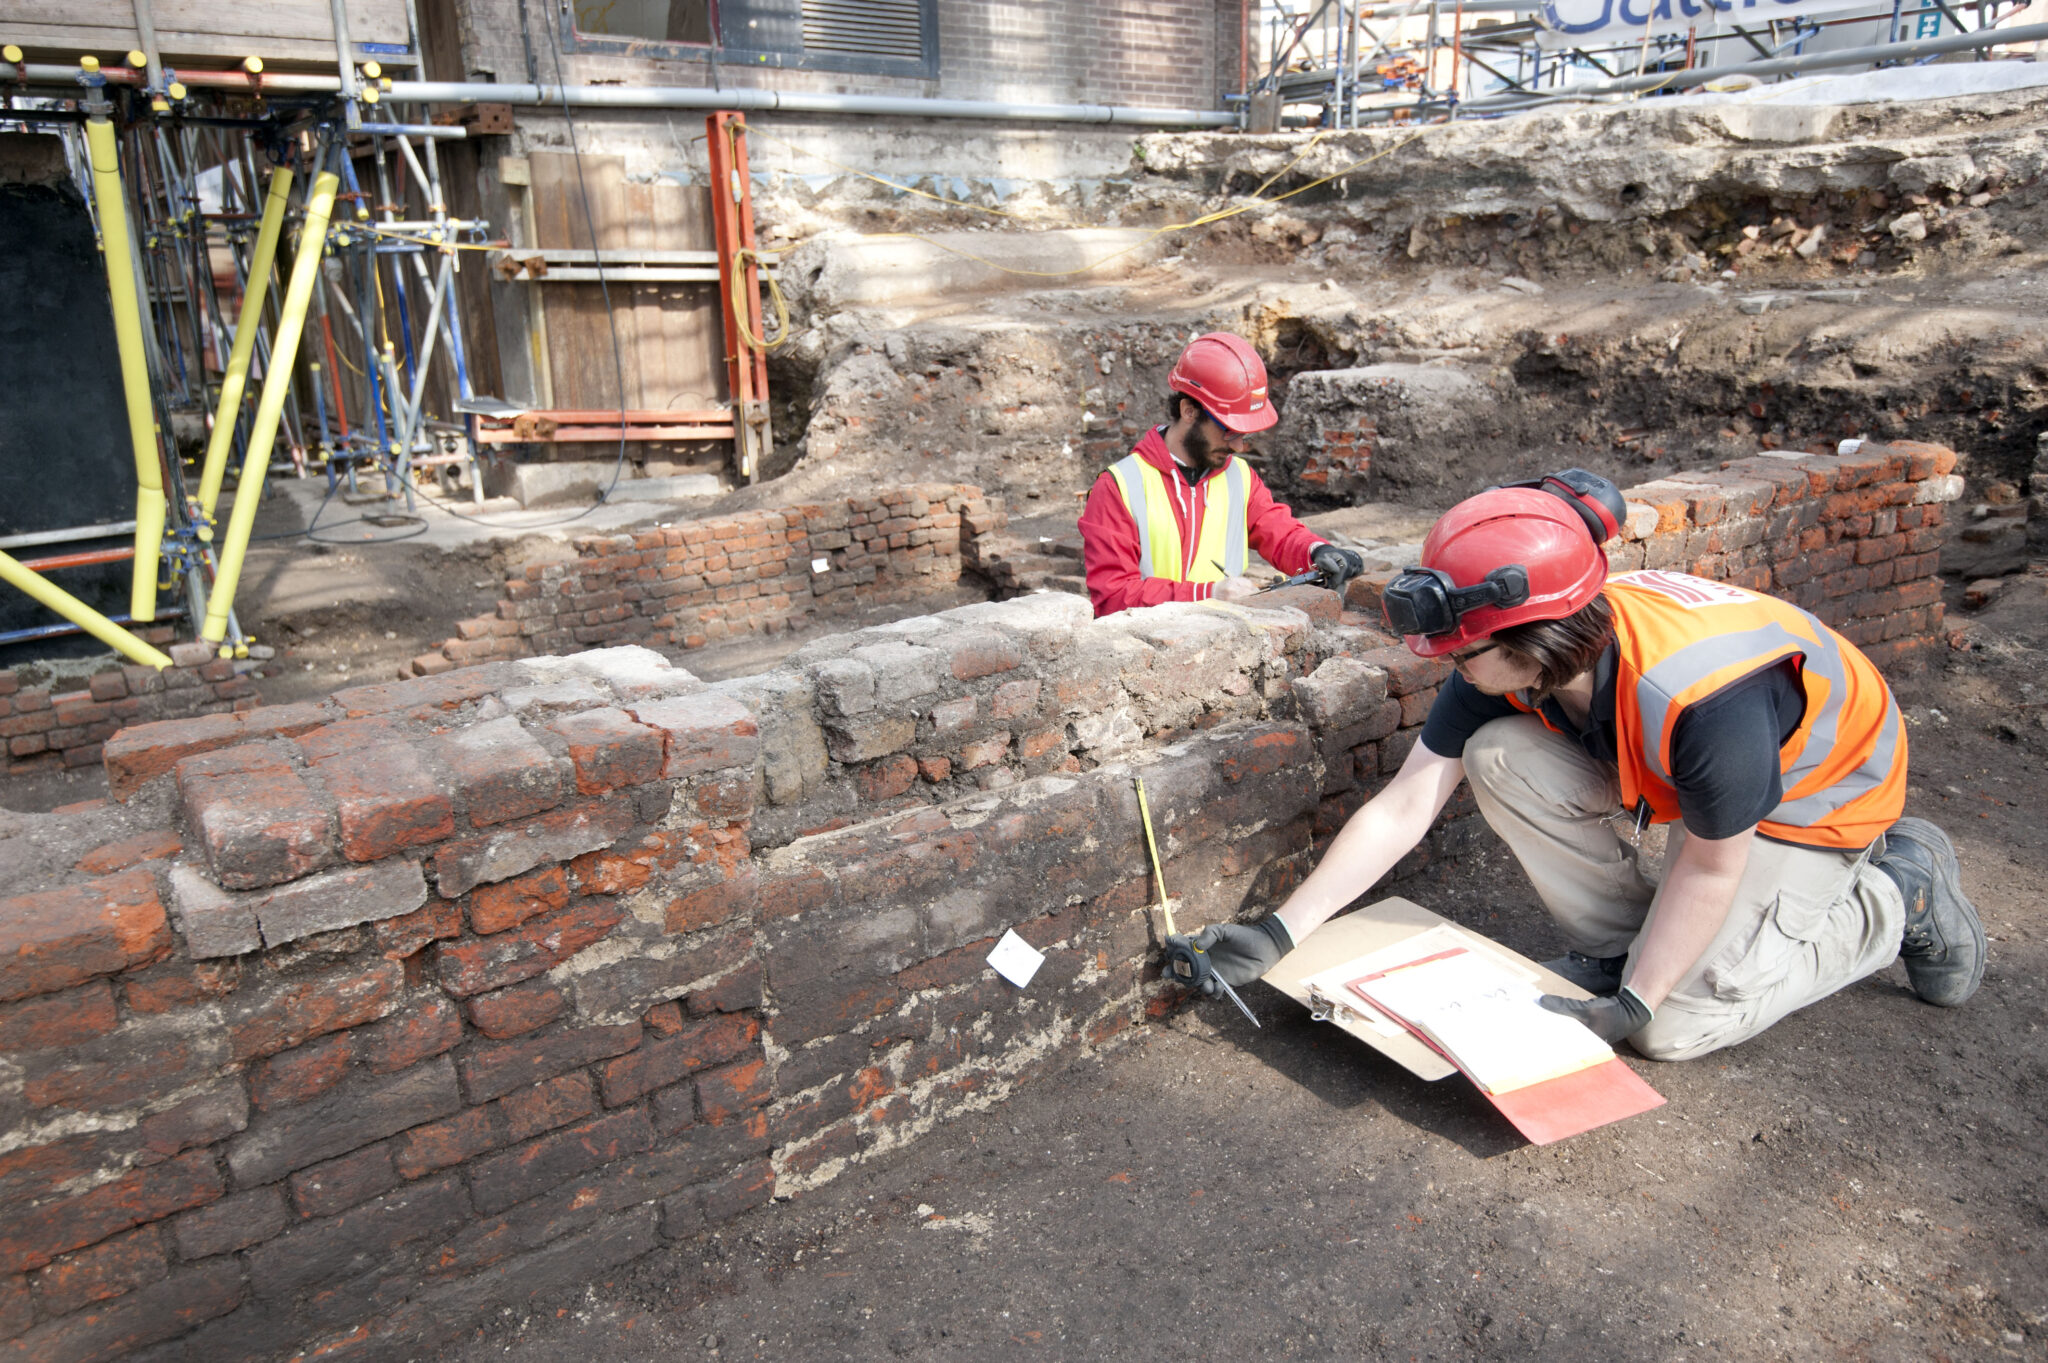 Archaeologist uncover remains of curtain theatre